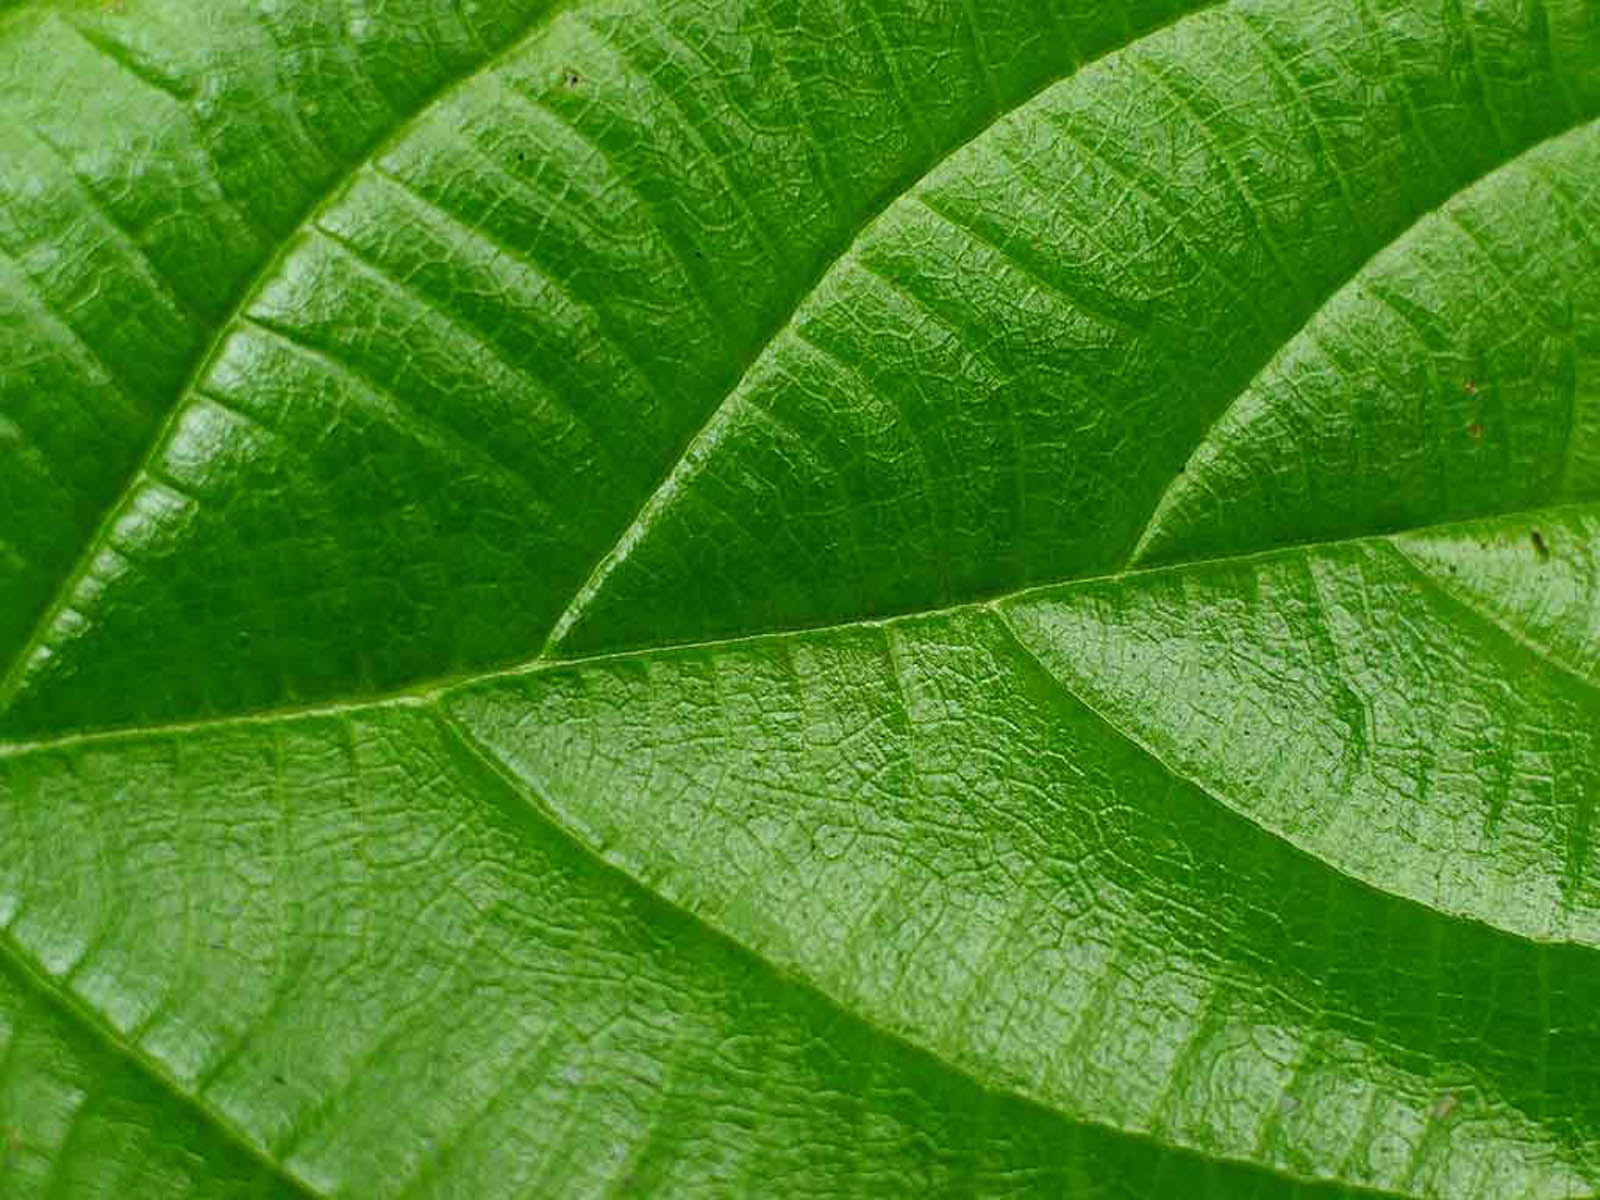 leaf background wallpaper - photo #7